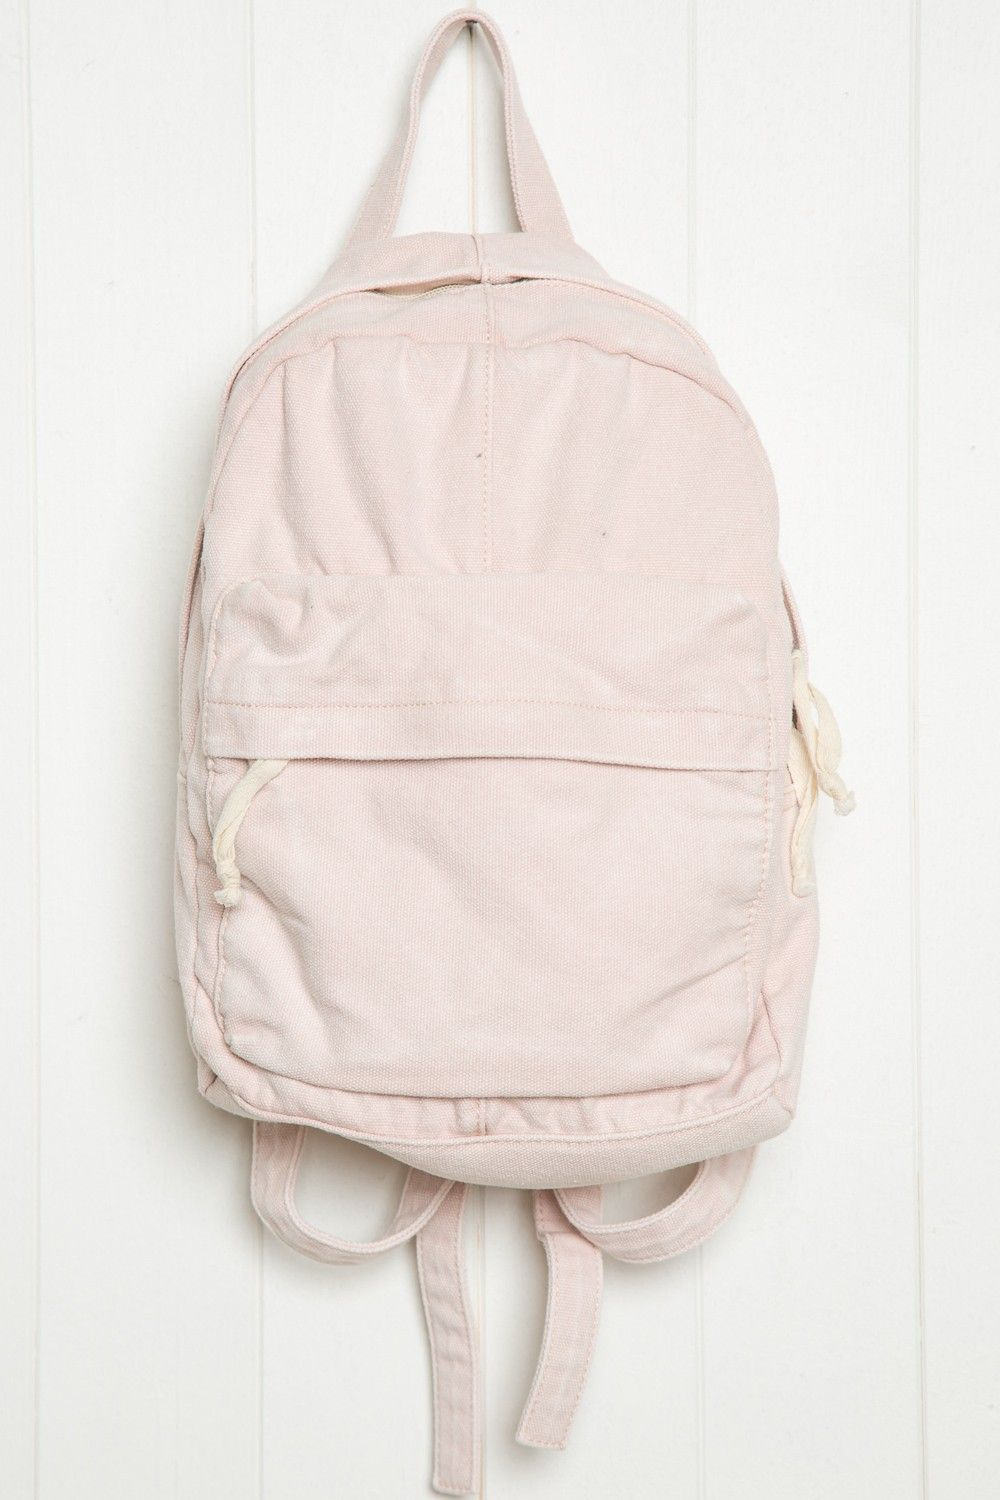 7729d4f42d Brandy ♥ Melville | Pink Canvas Mini Backpack - Bags & Backpacks -  Accessories